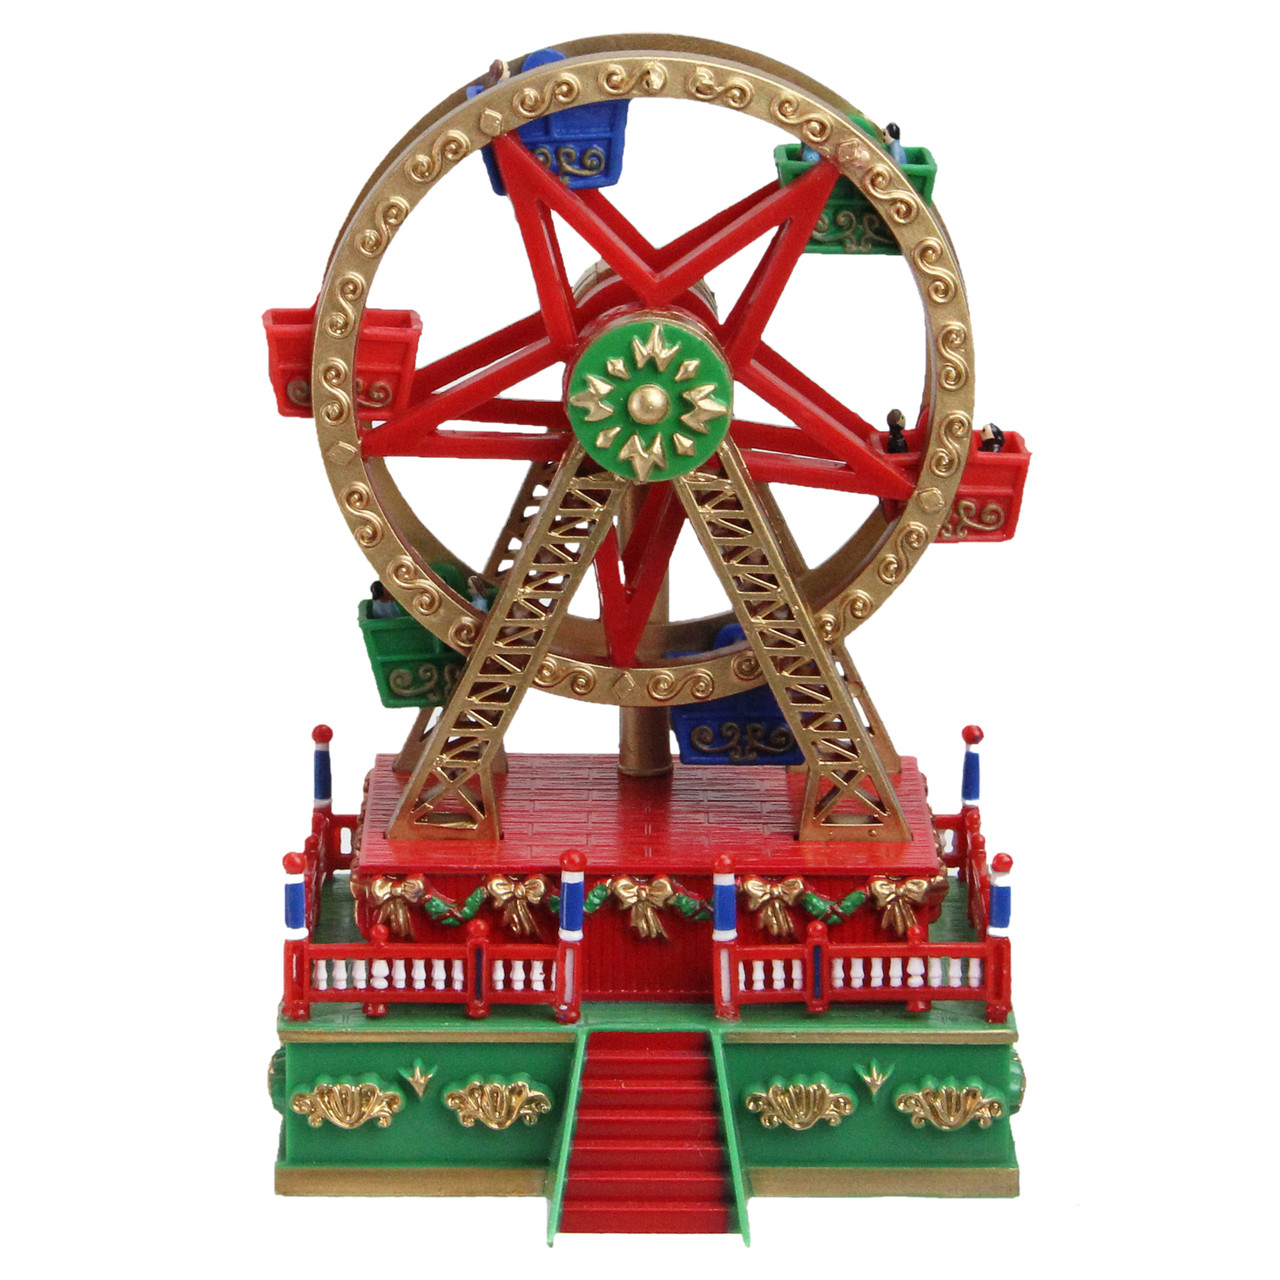 55 wound up mini carnival ferris wheel christmas table top decoration 32632752 - Christmas Ferris Wheel Decoration